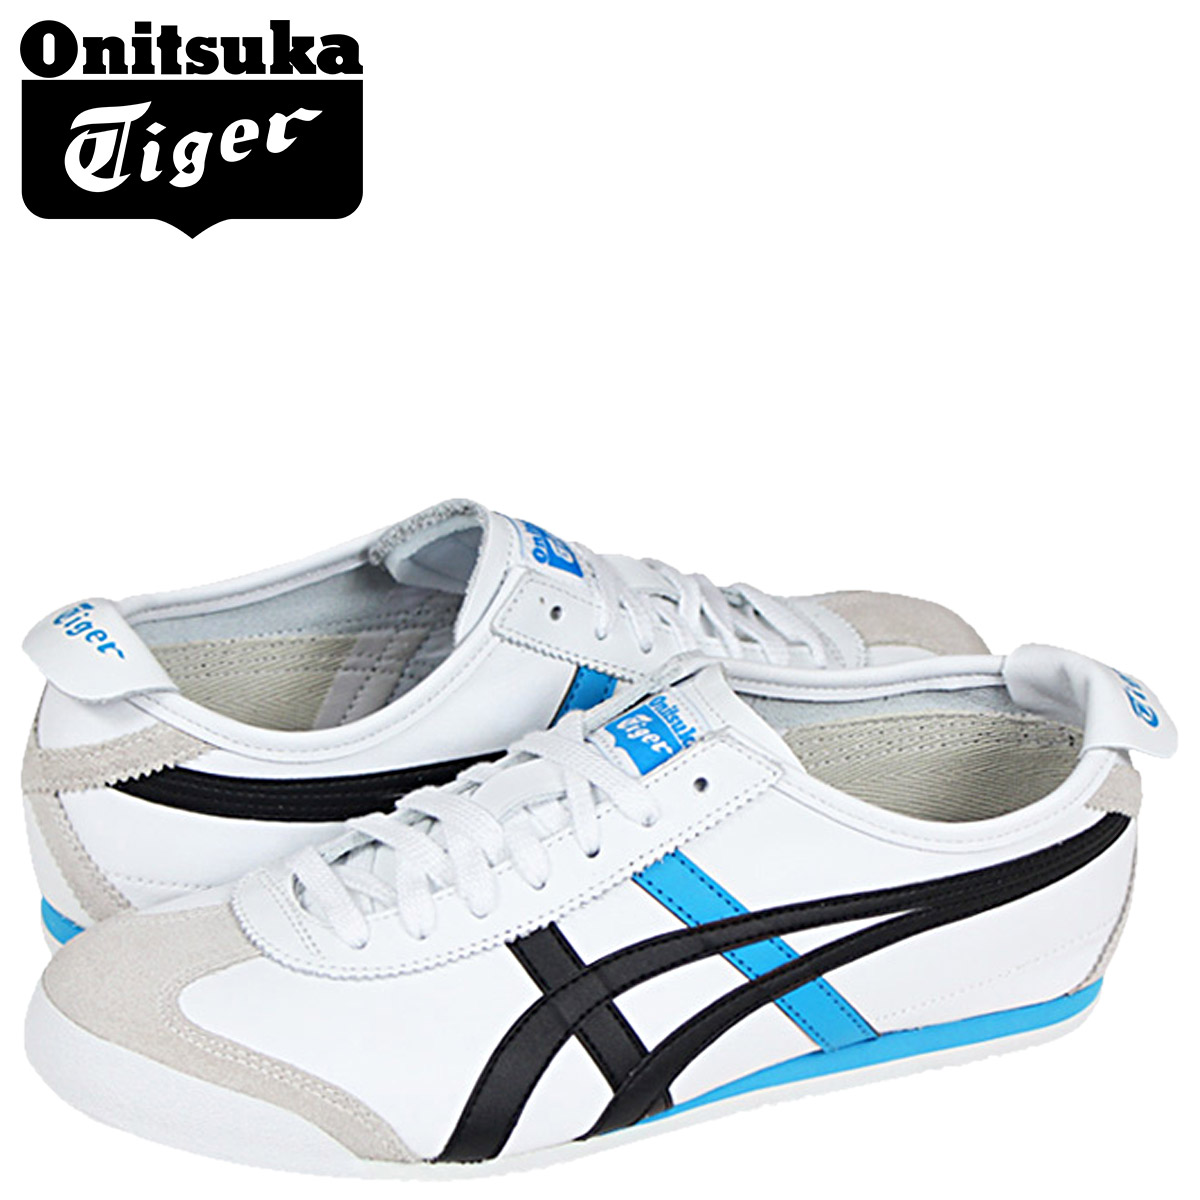 wholesale dealer 17c2b 91287 Point 2 x Womens MEXICO 66 sneakers, ONITSUKA Tiger ASICs Onitsuka Tiger  asics Mexico 66 suede × leather white THL7C2-0152 [5 / 13 new in stock] ...